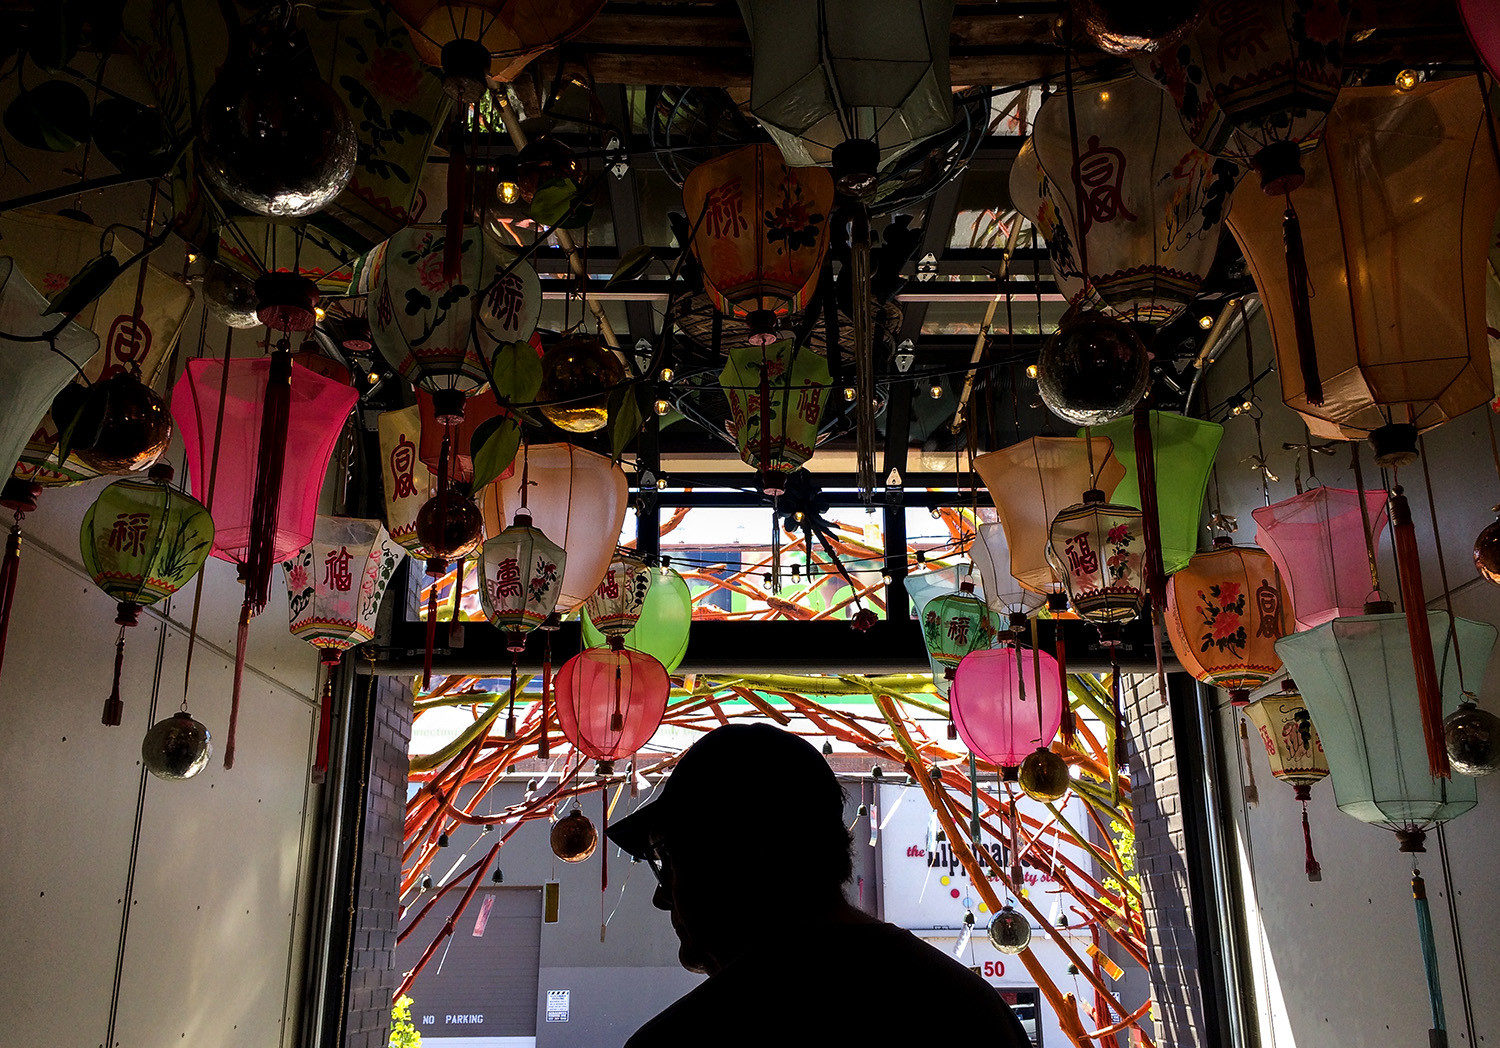 A customer of Cargo in southeast Portland takes one last look at wares before exiting under the lantern display. Portland, OR. 2017.